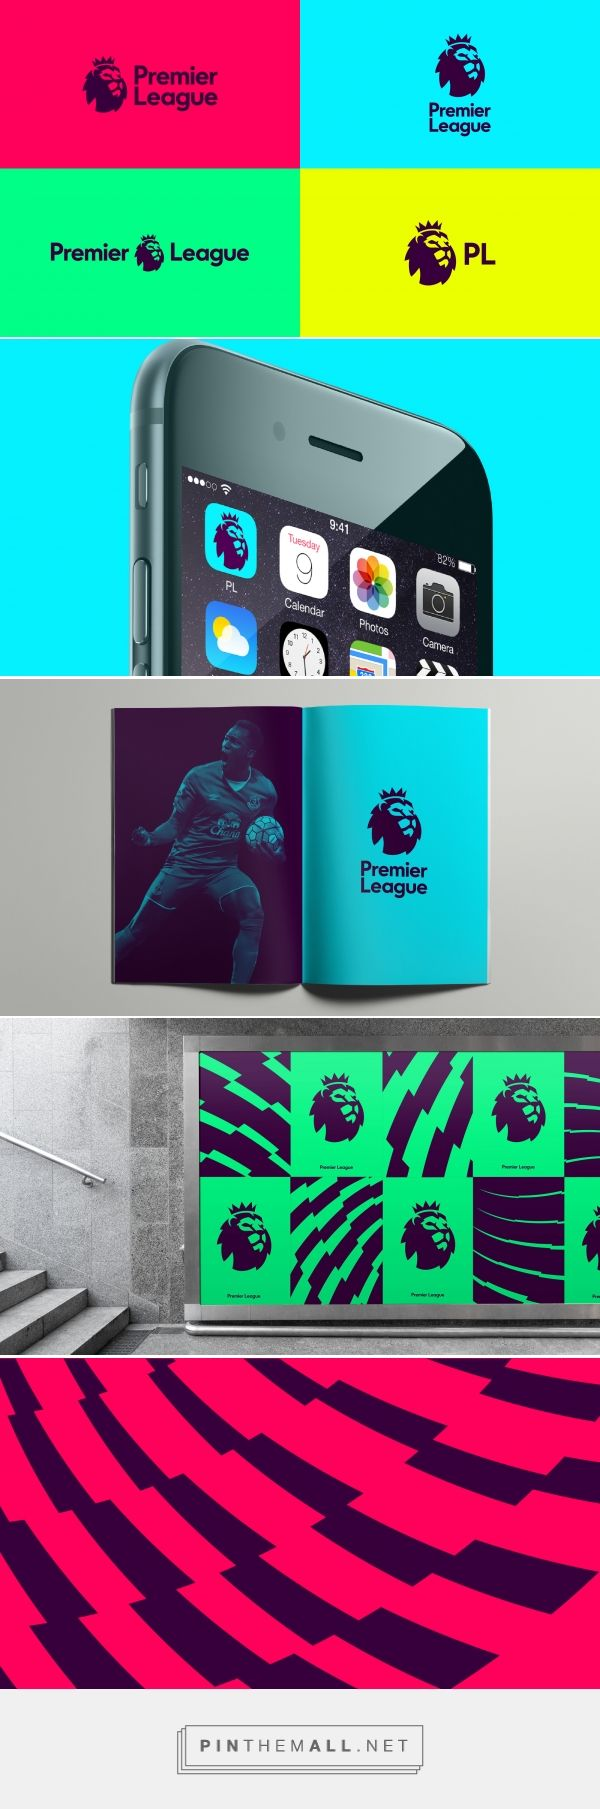 DesignStudio rebrands Premier League – Creative Review.